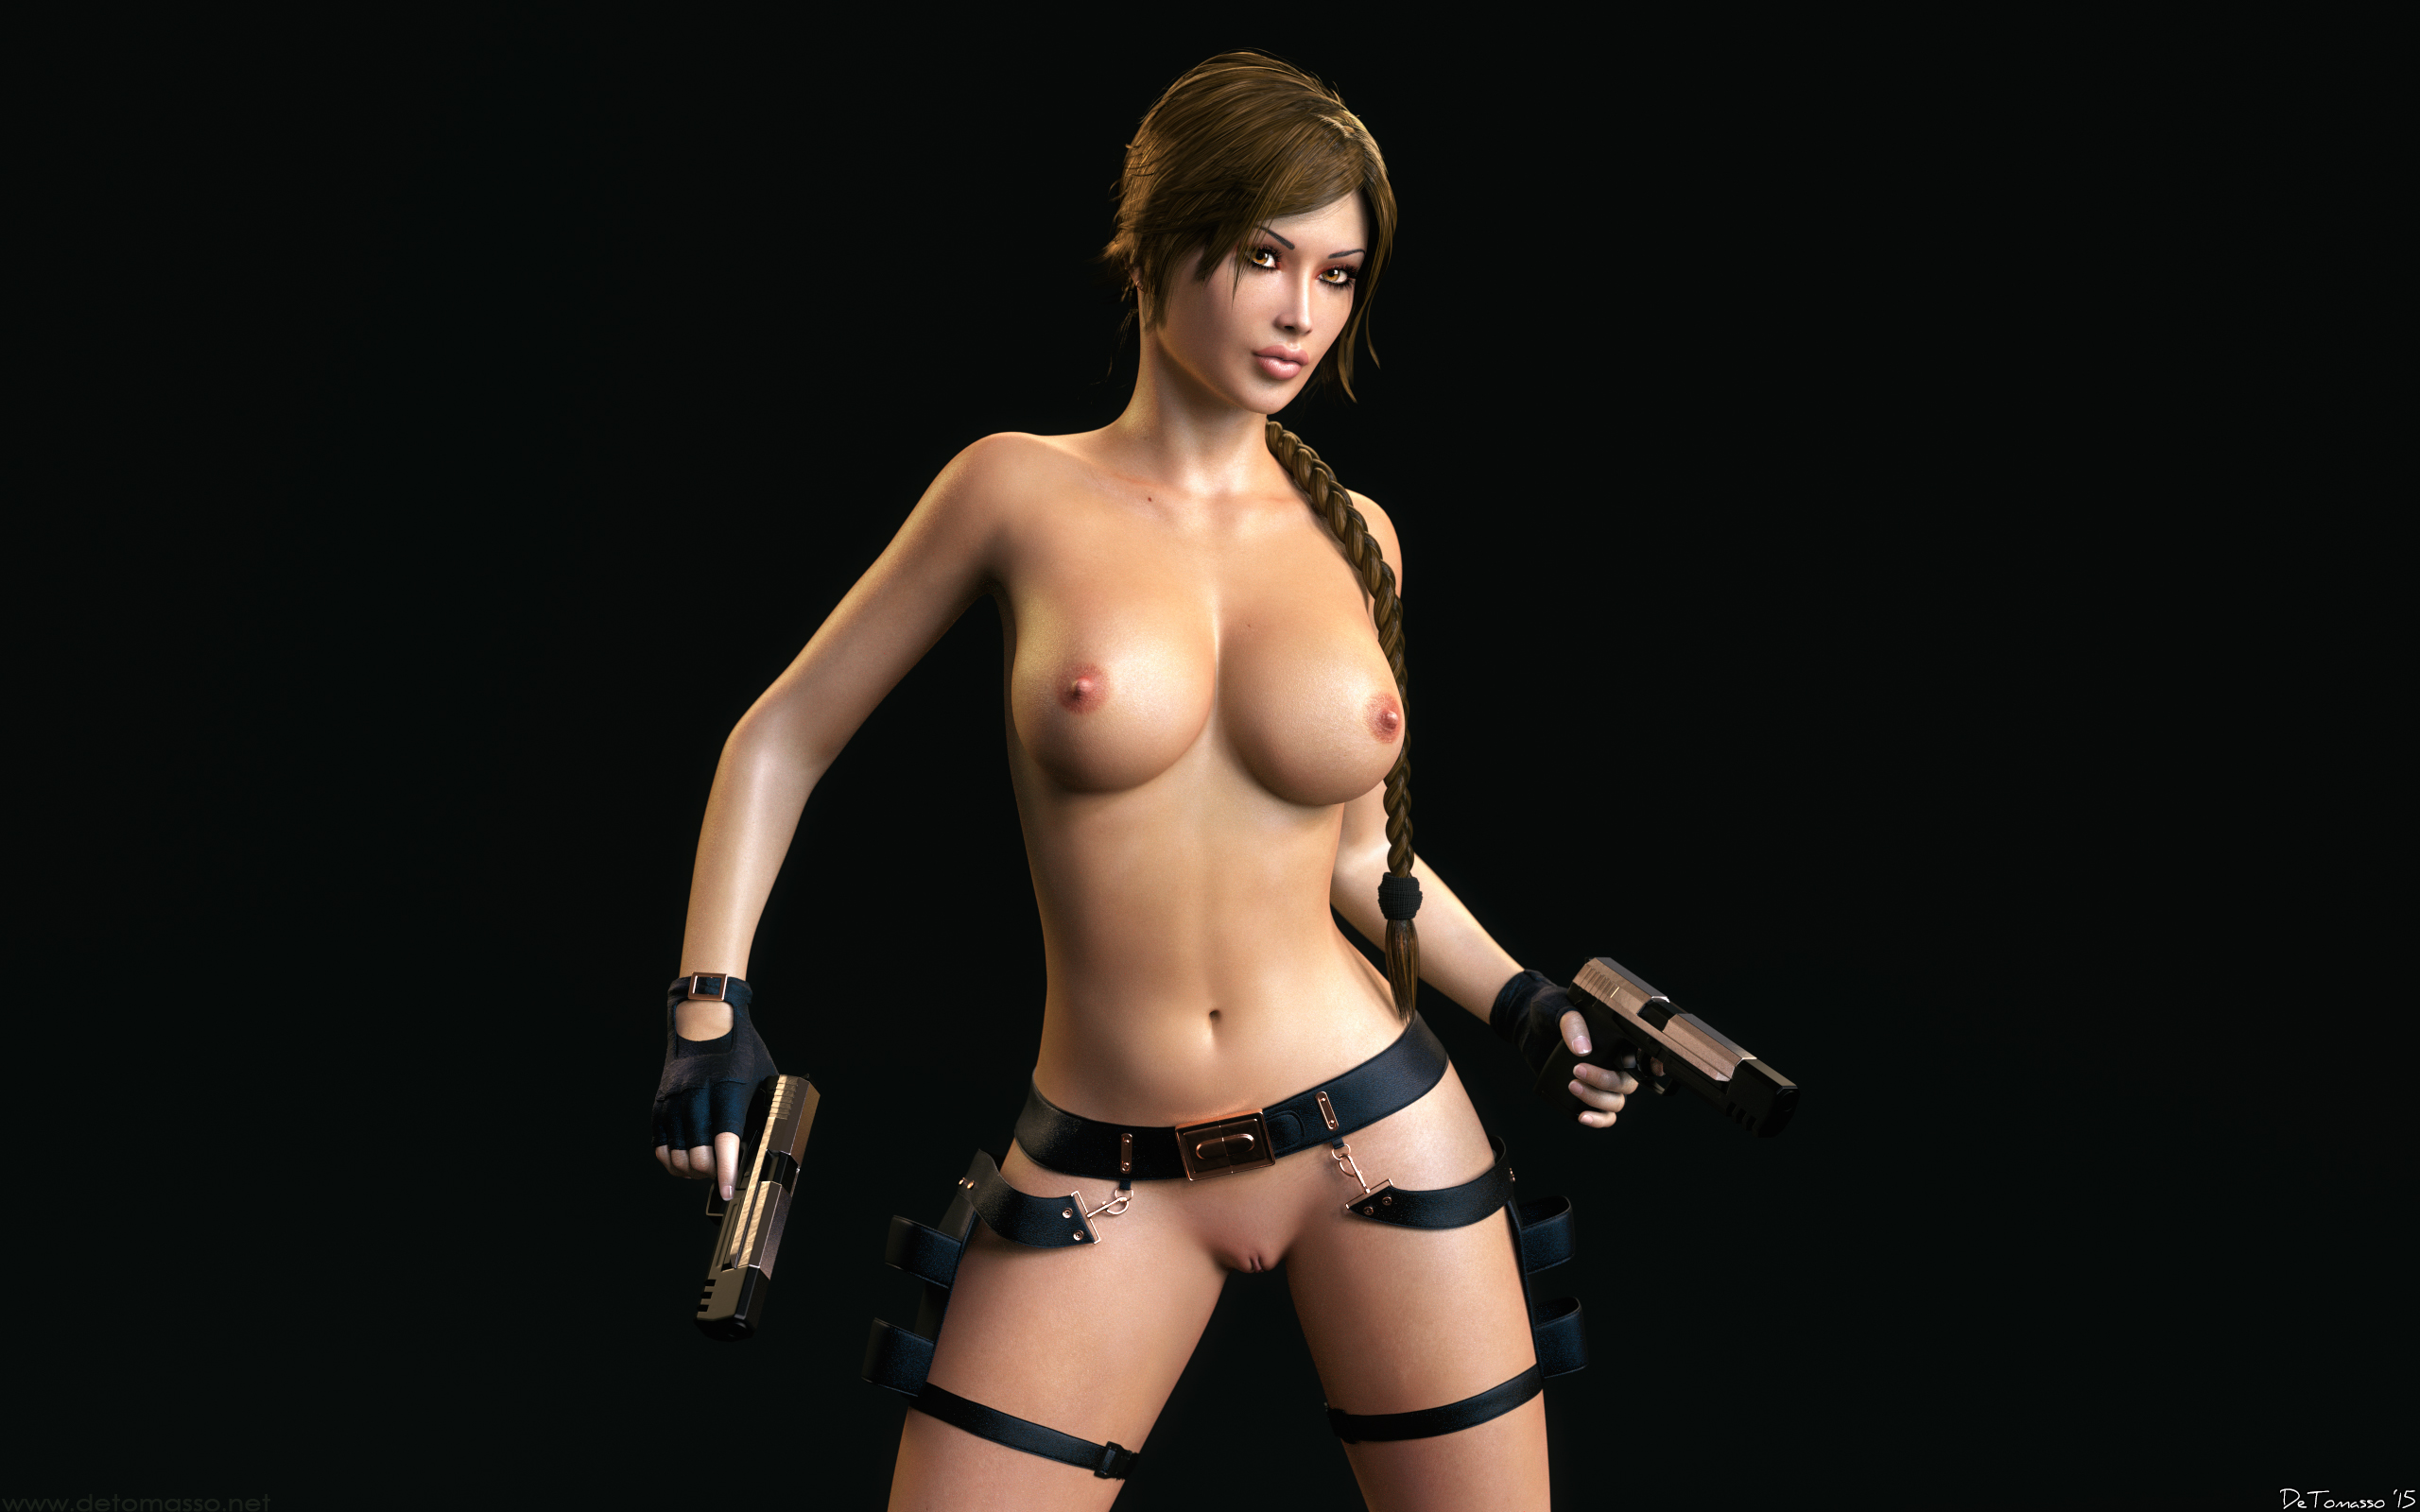 Lara croft naked uncensored sex video